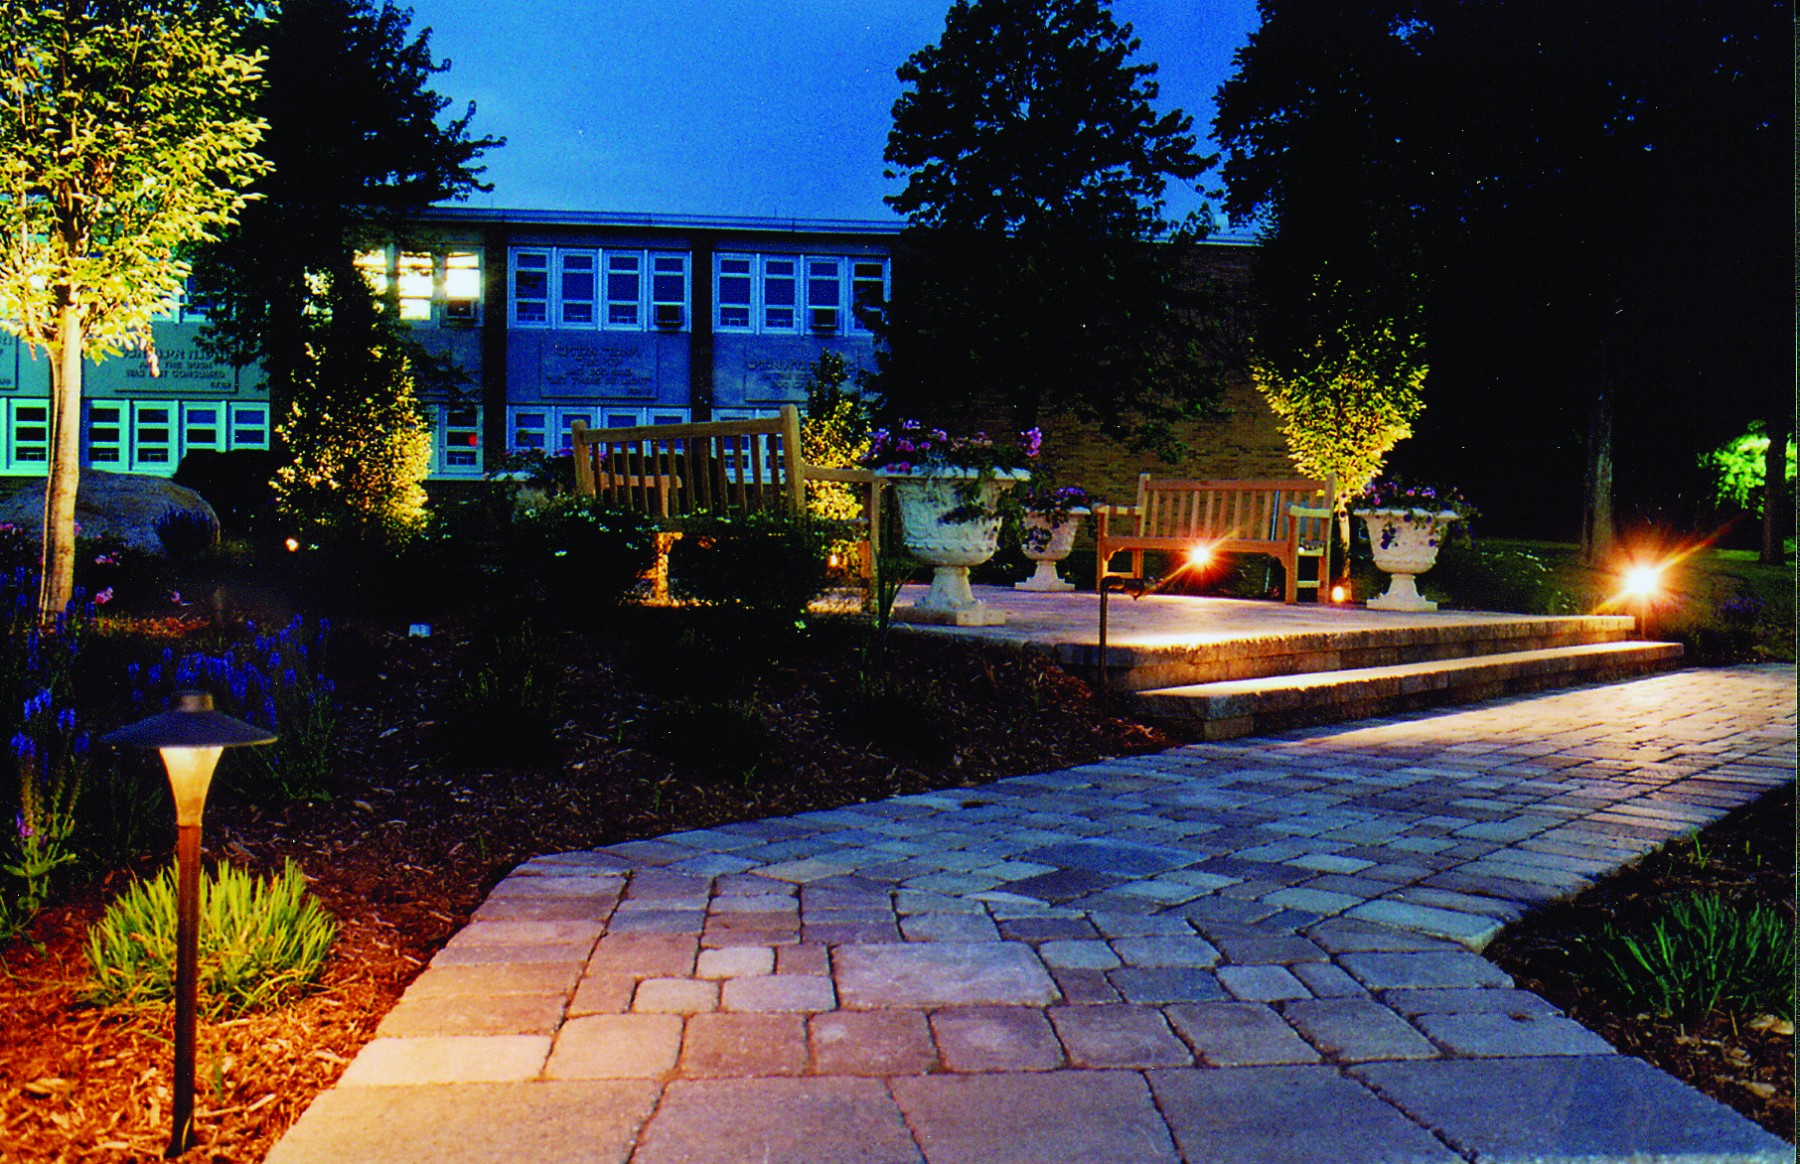 Just How Much Lighting the Landscaping Is Simply Too Much?